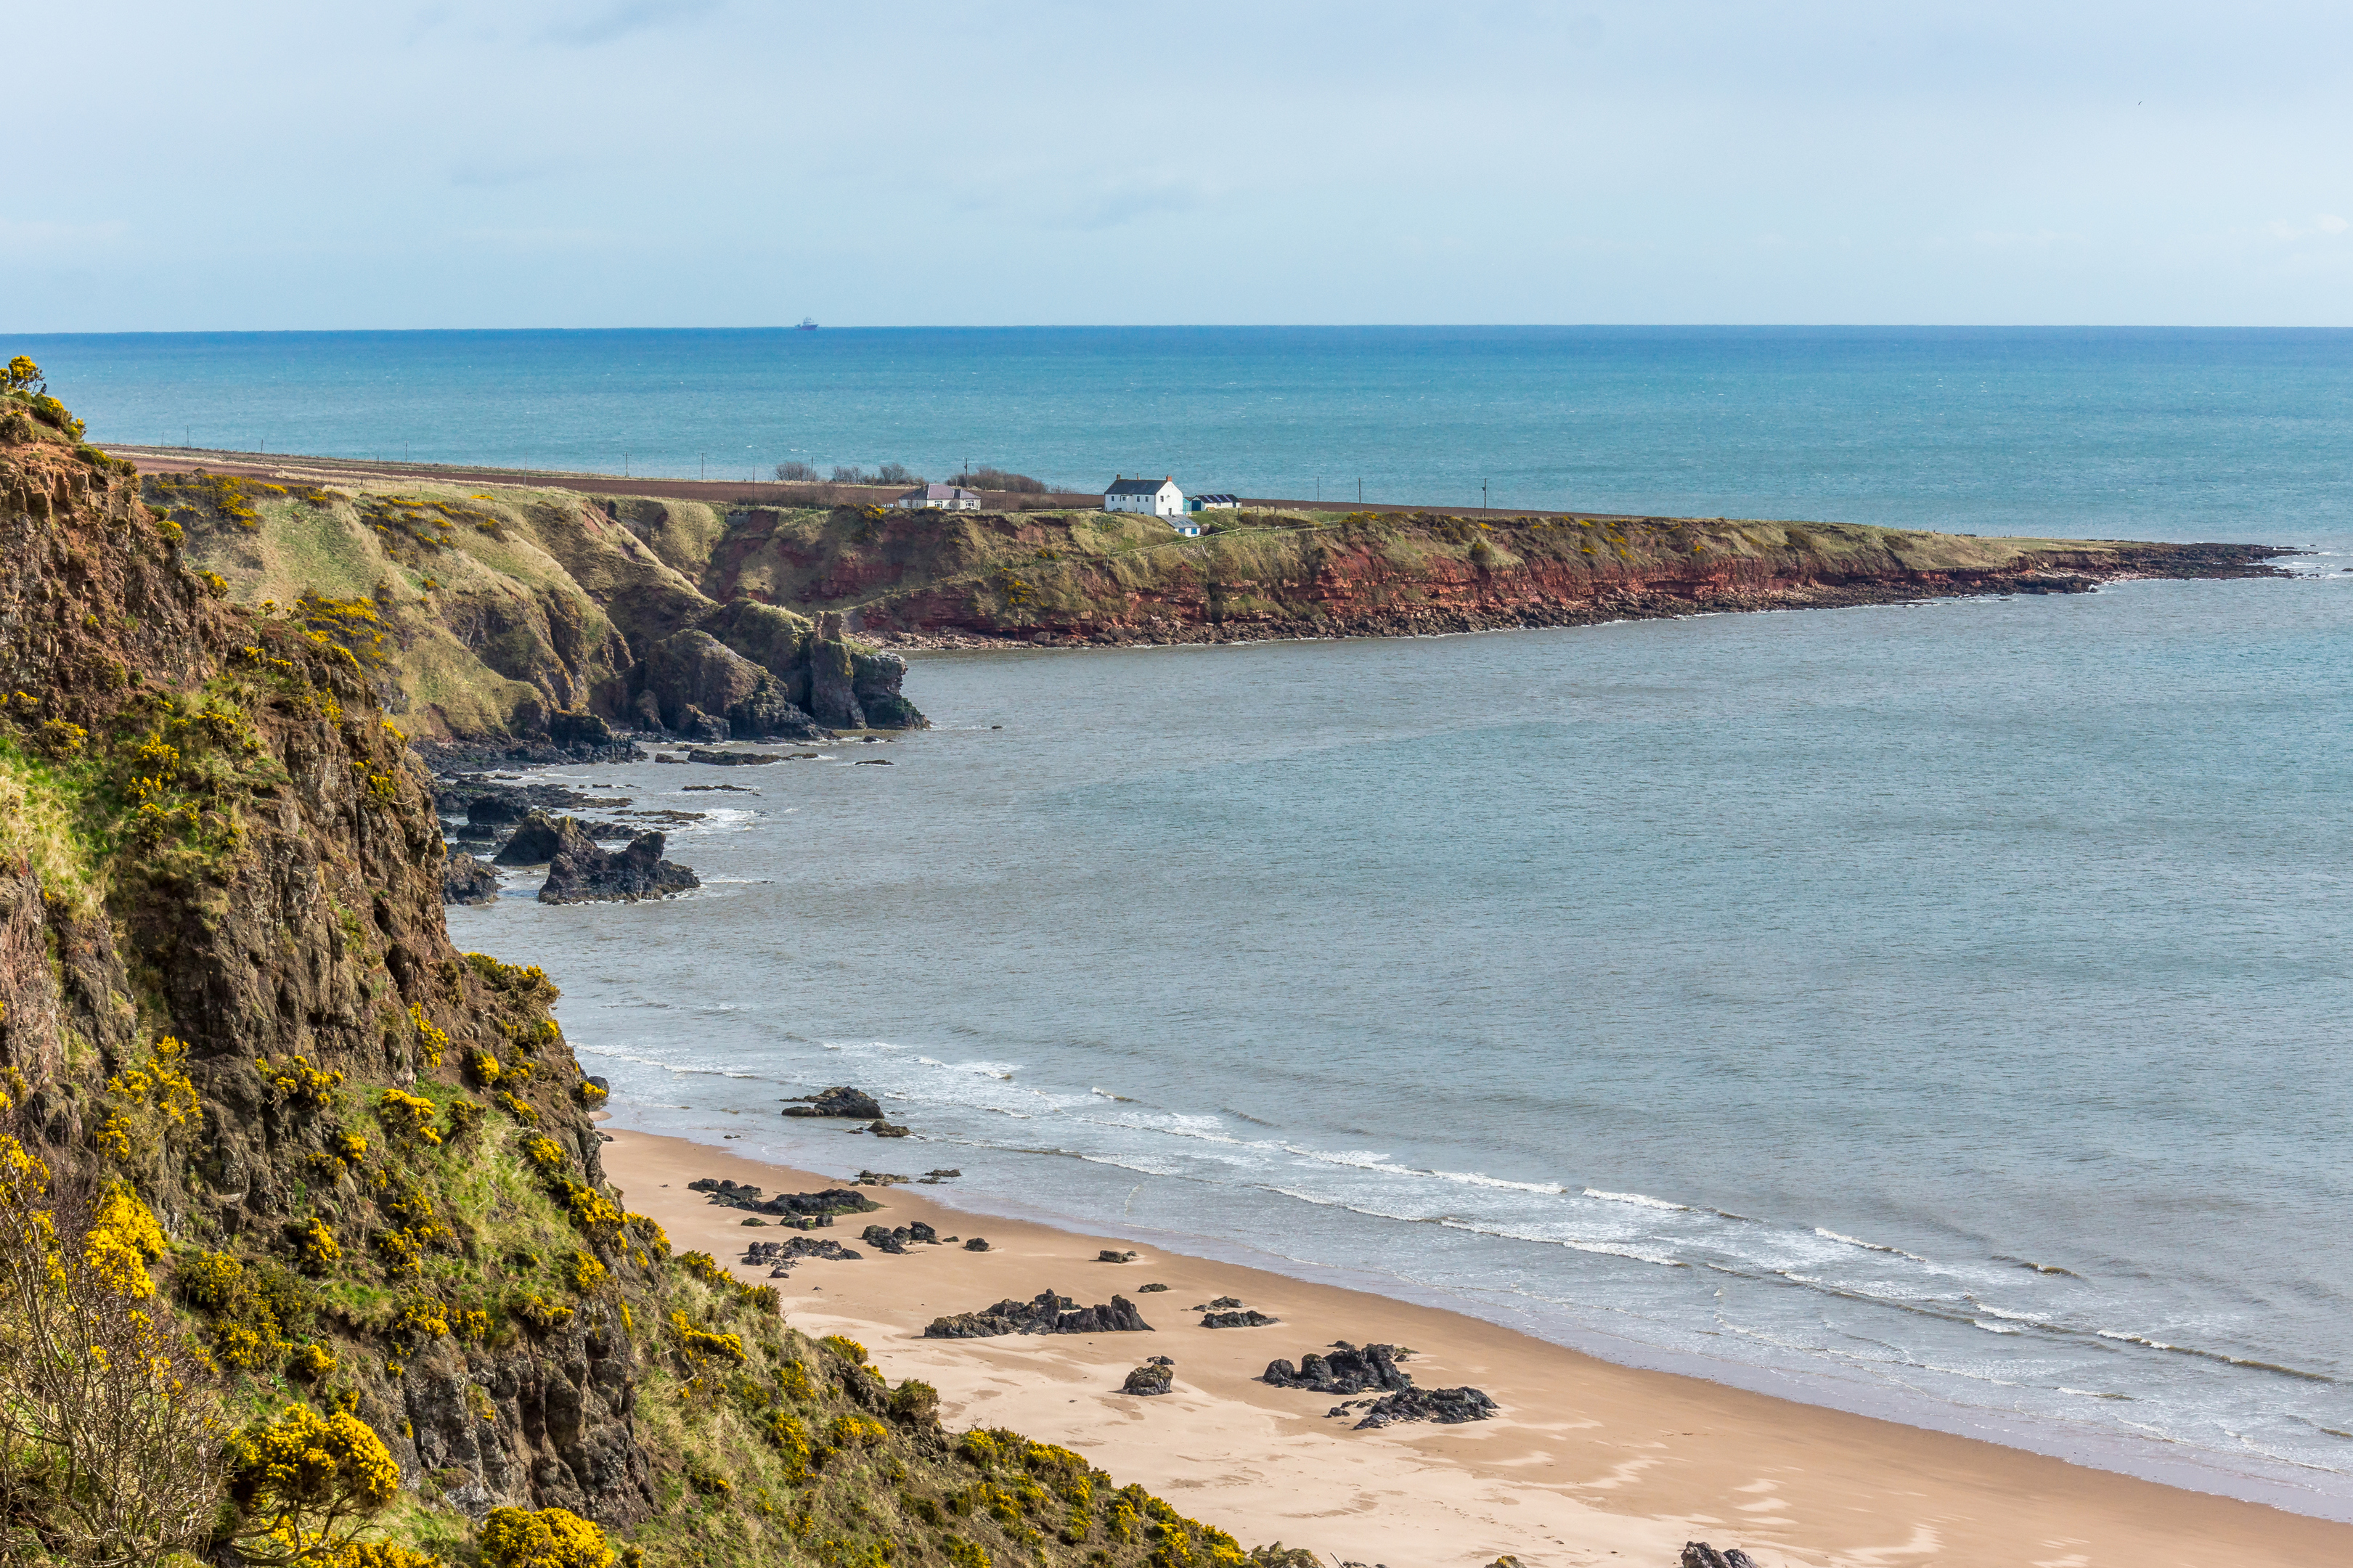 St. Cyrus cliff and headland